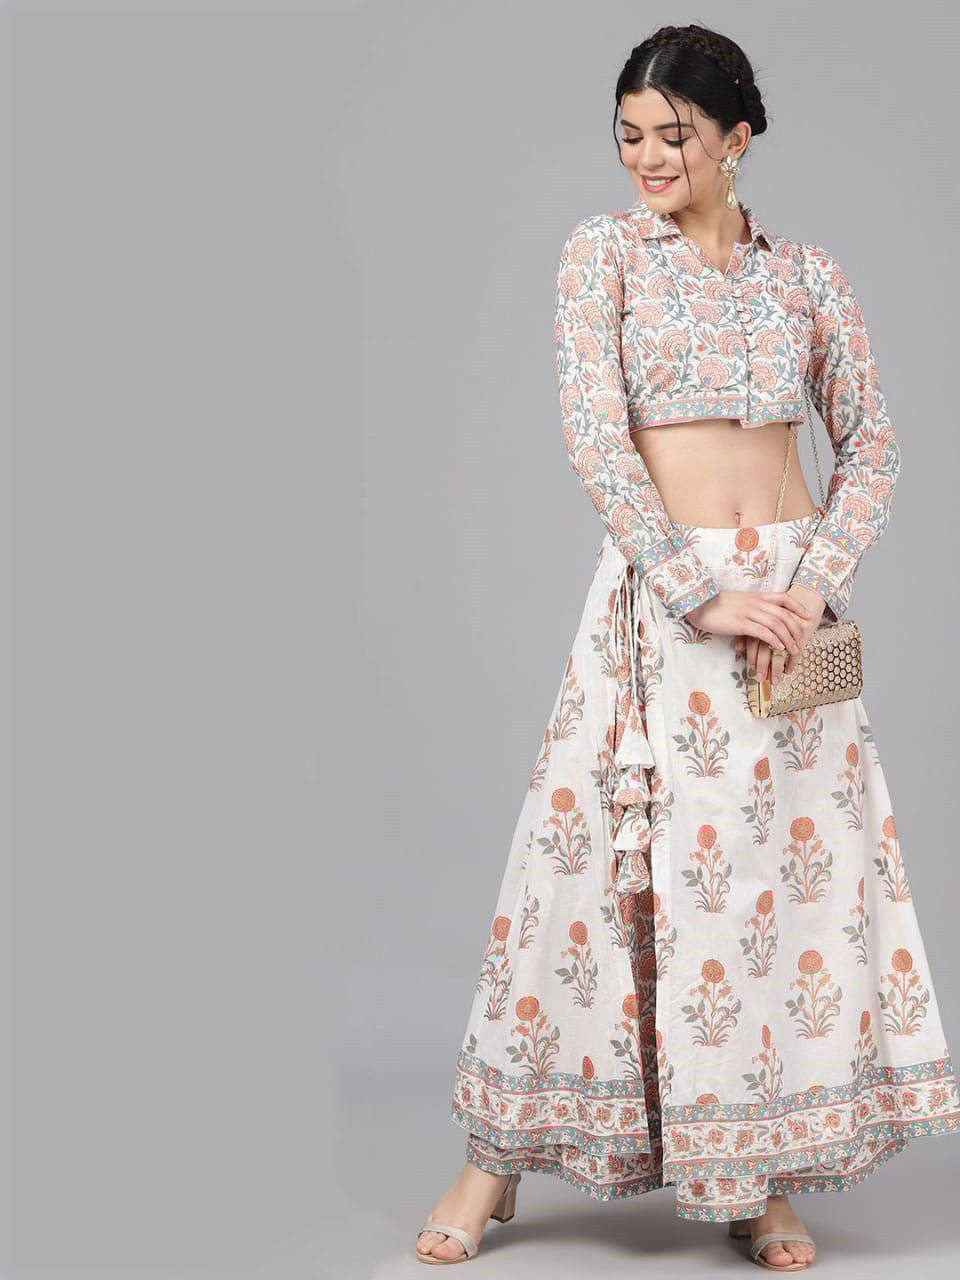 Elegant Off-white & Peach coloured Khari print crop top & skirt